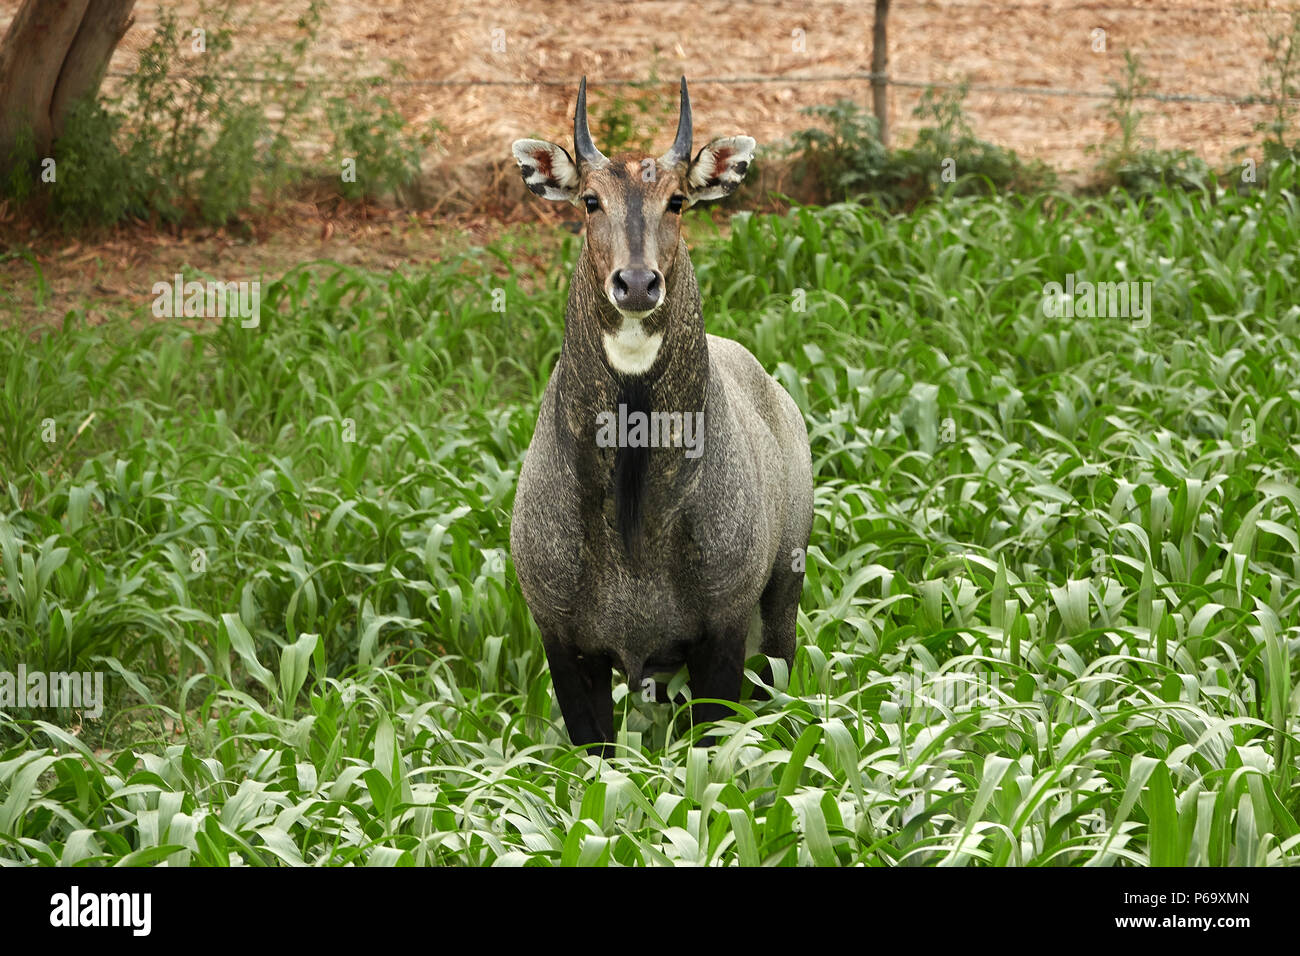 The nilgai or blue bull is the largest Asian antelope and is endemic to the Indian subcontinent. standing in a green grassland Stock Photo